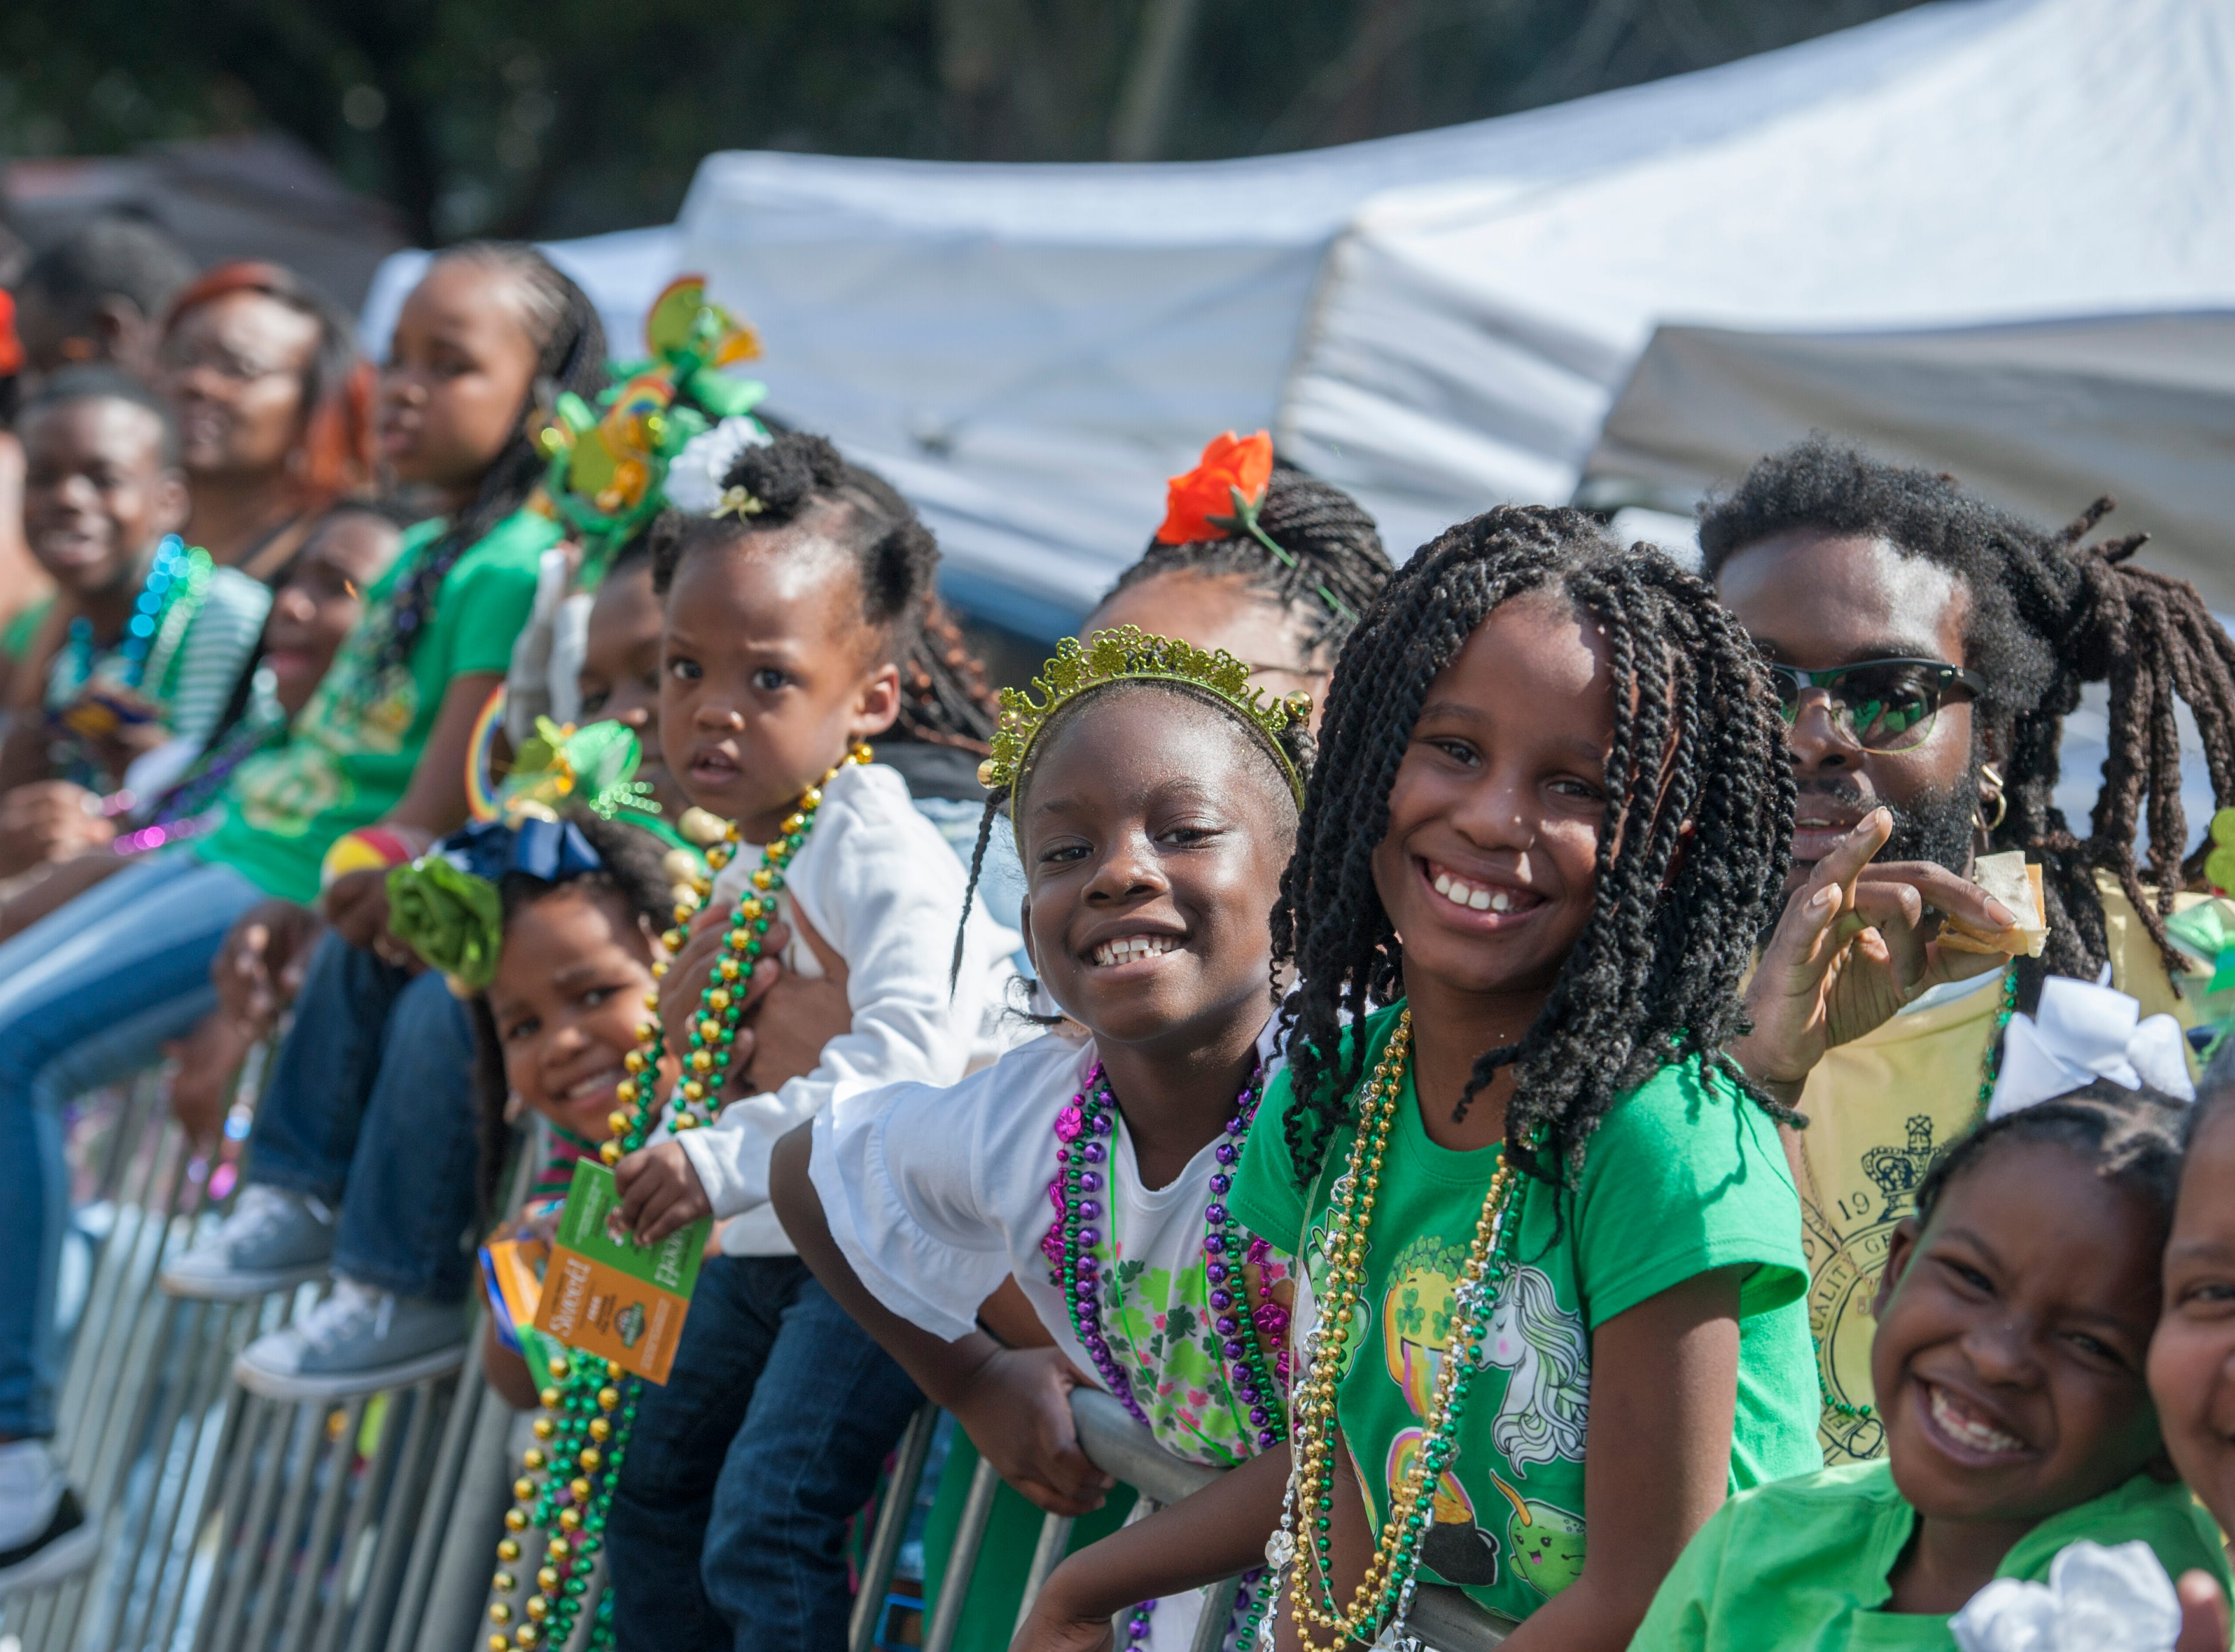 Smiling young faces at Hal's St. Paddy's Day Parade show an annual tradition in the making.